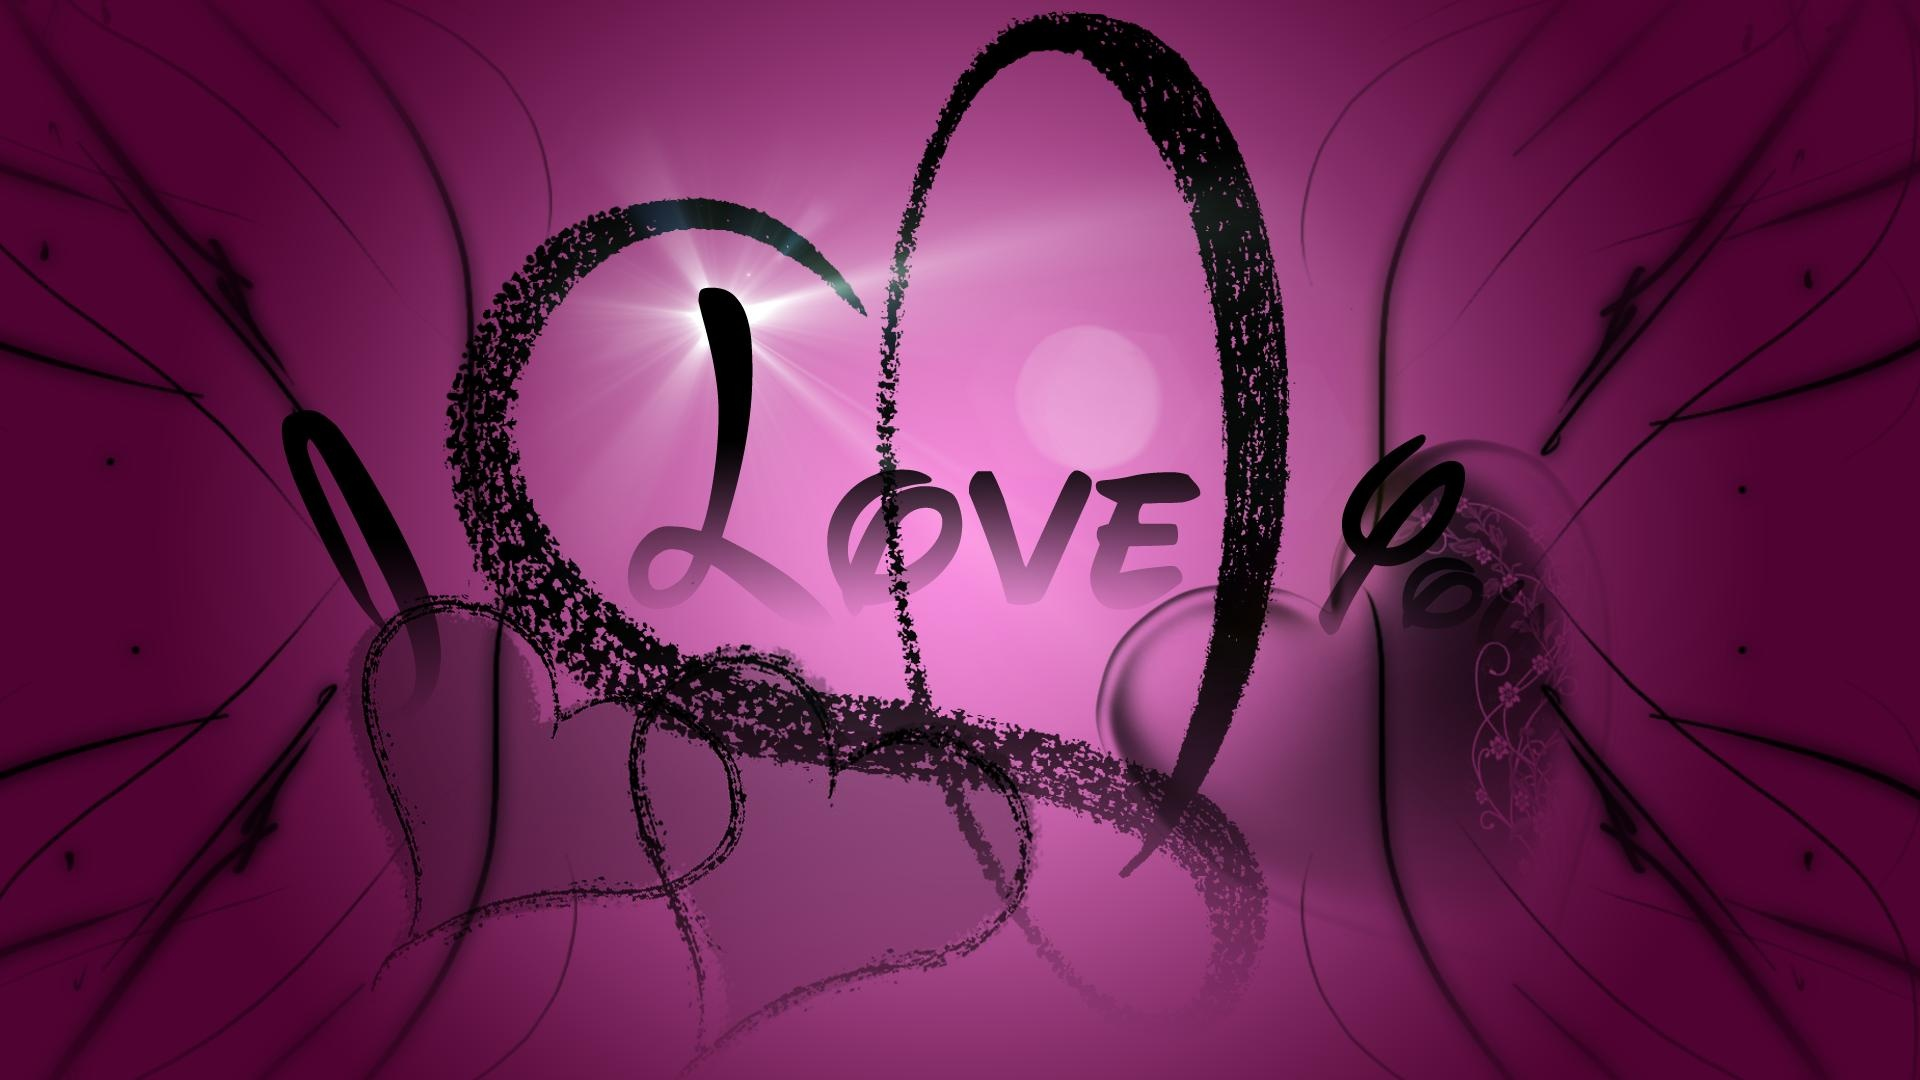 Best I Love You Wallpapers : Love You In Purple Facebook Covers Facebook Timeline Cover Photos